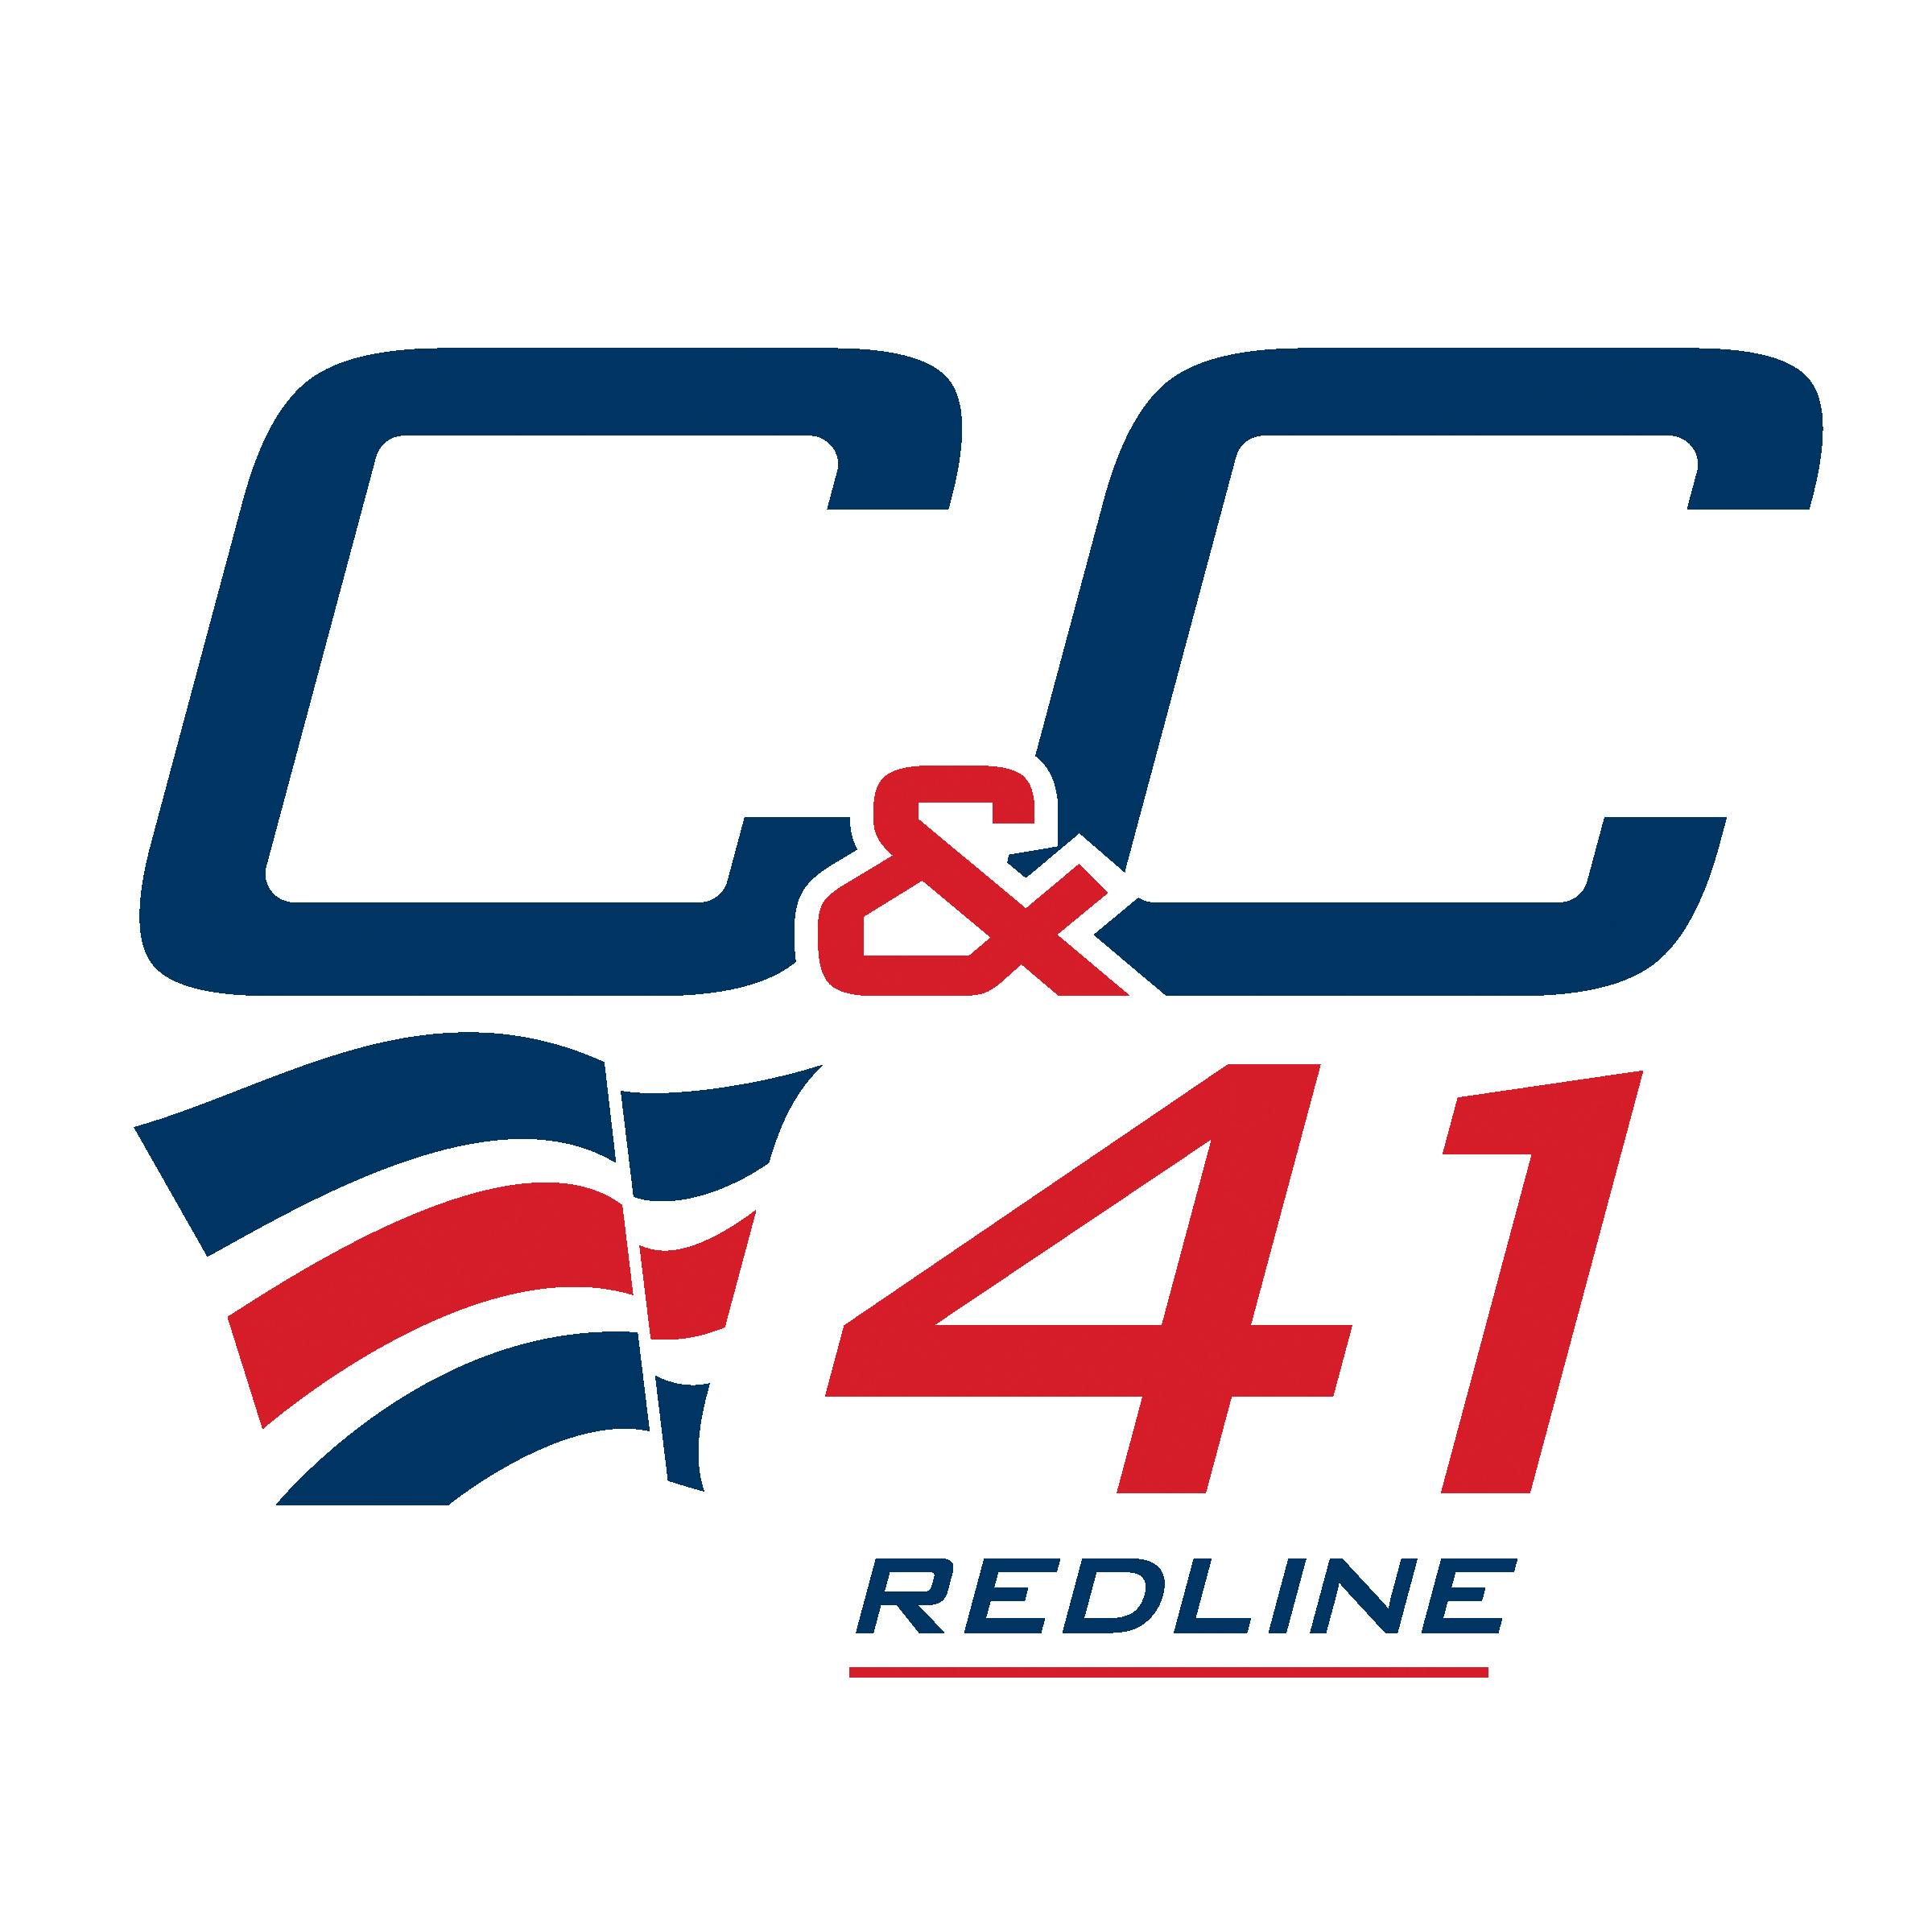 C&C Yachts - Redline 41 - Logo Added to Other Products